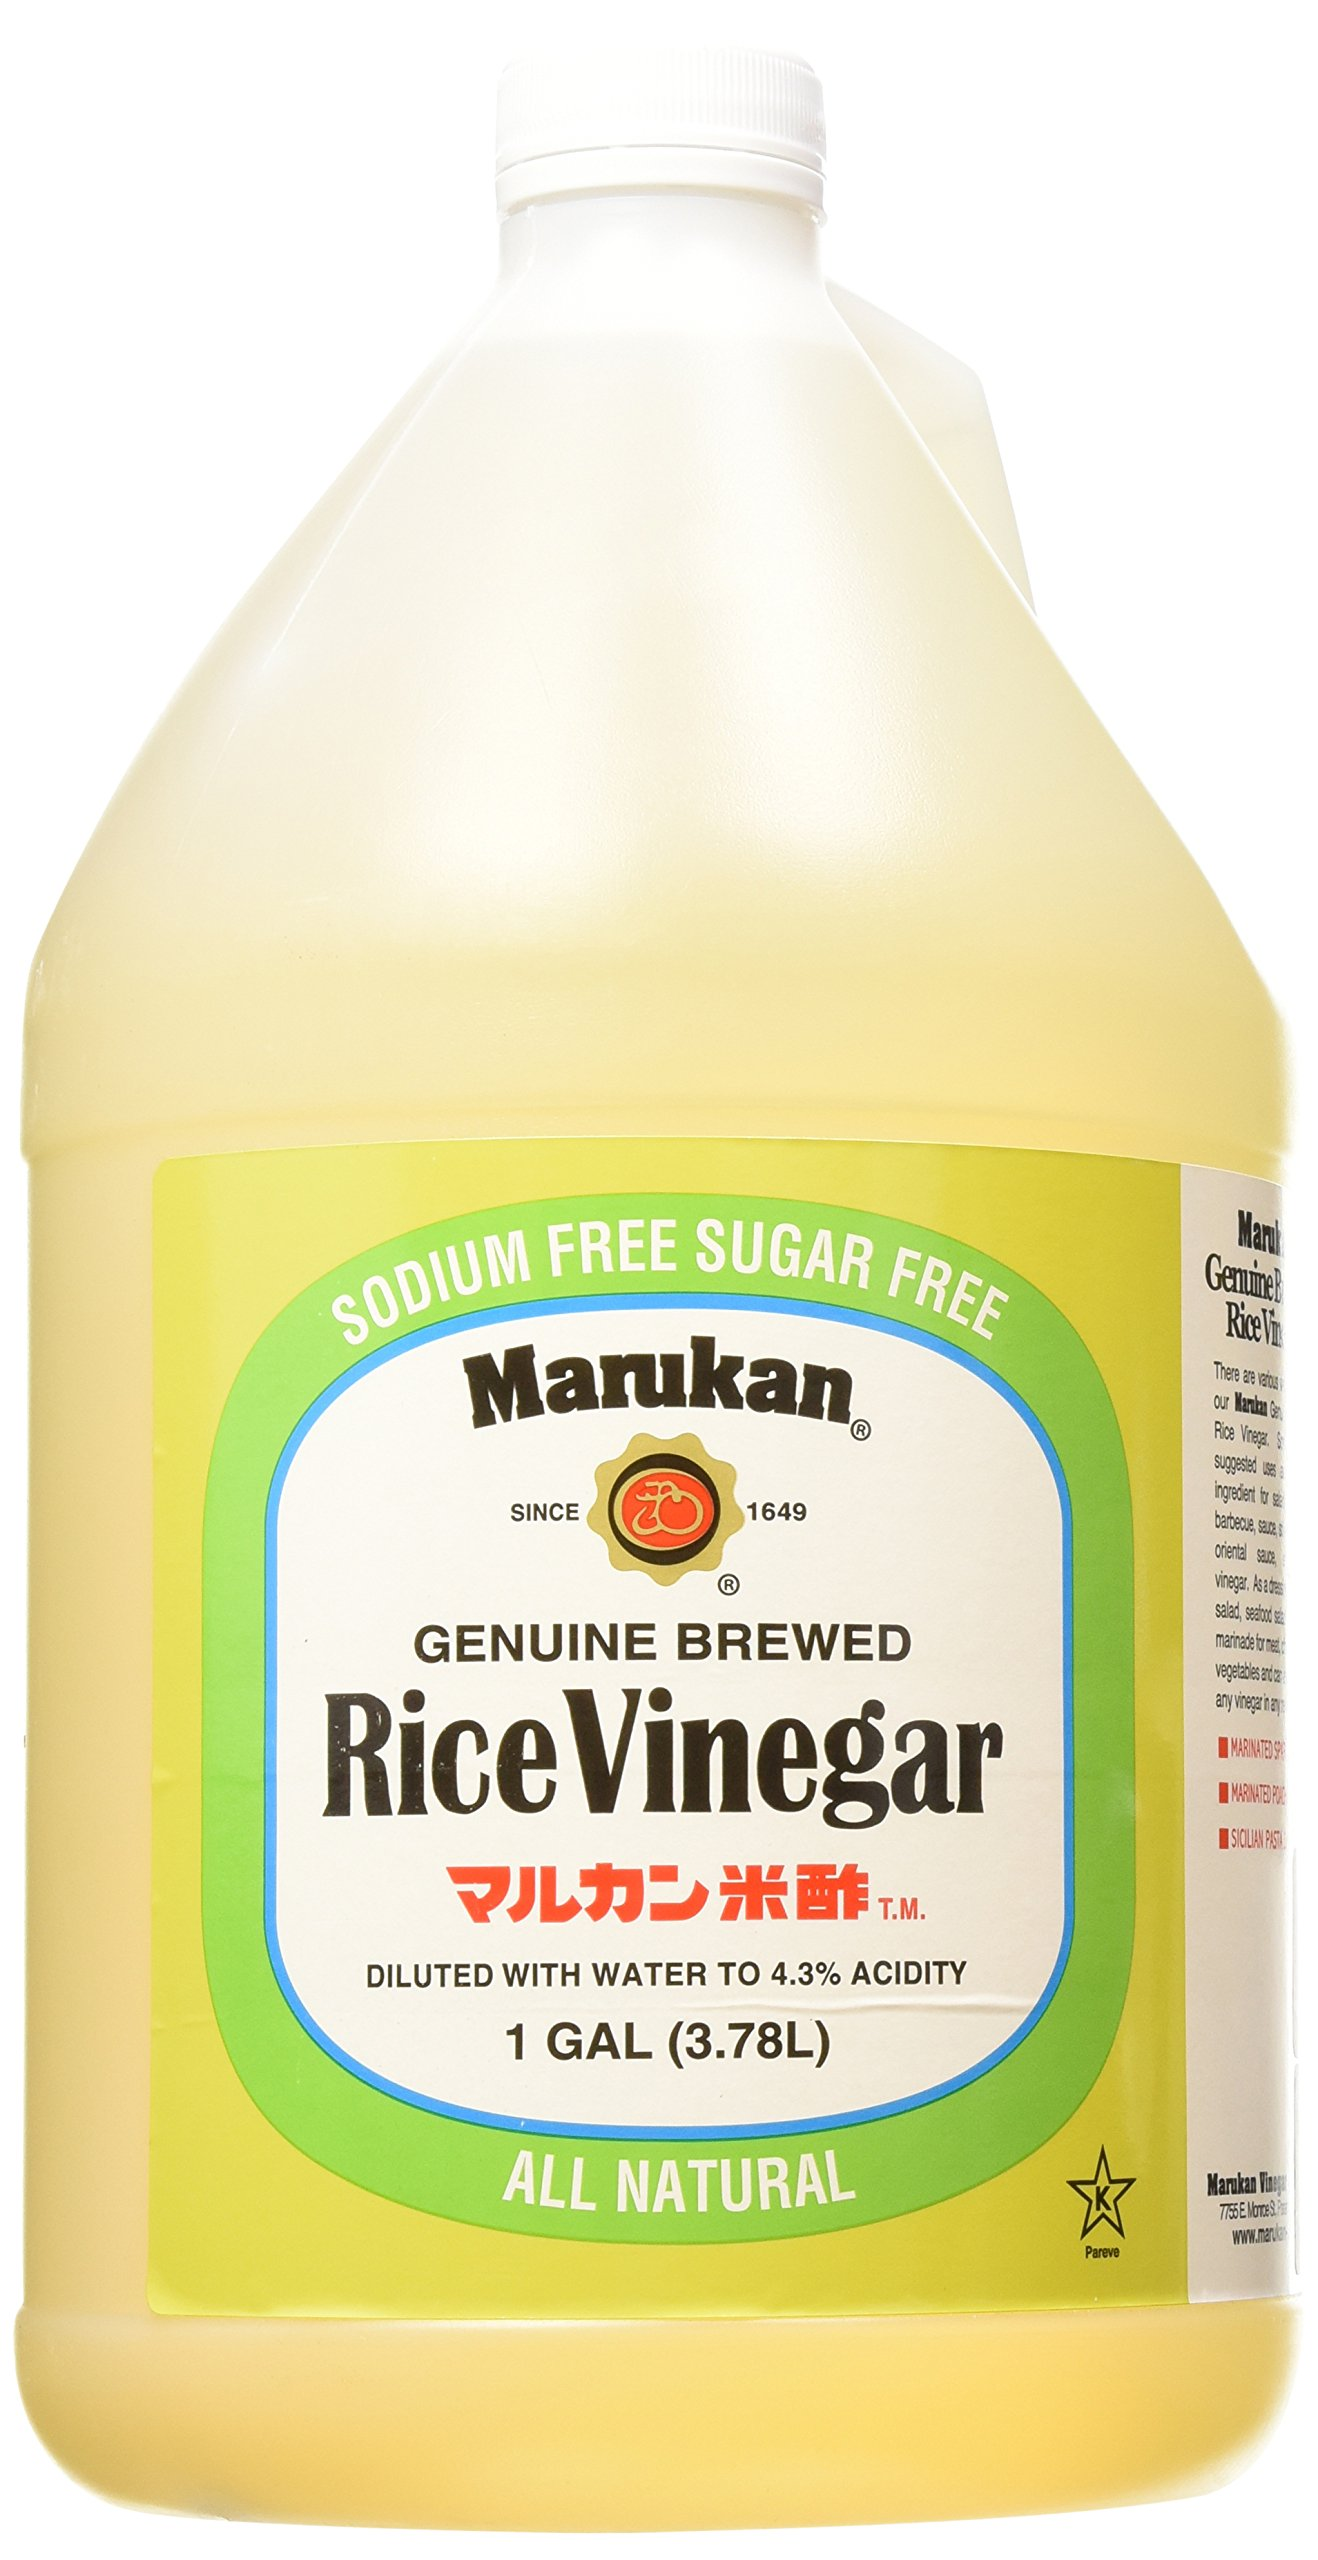 Marukan Genuine Brewed Rice Vinegar Unseasoned, 1 Gallon